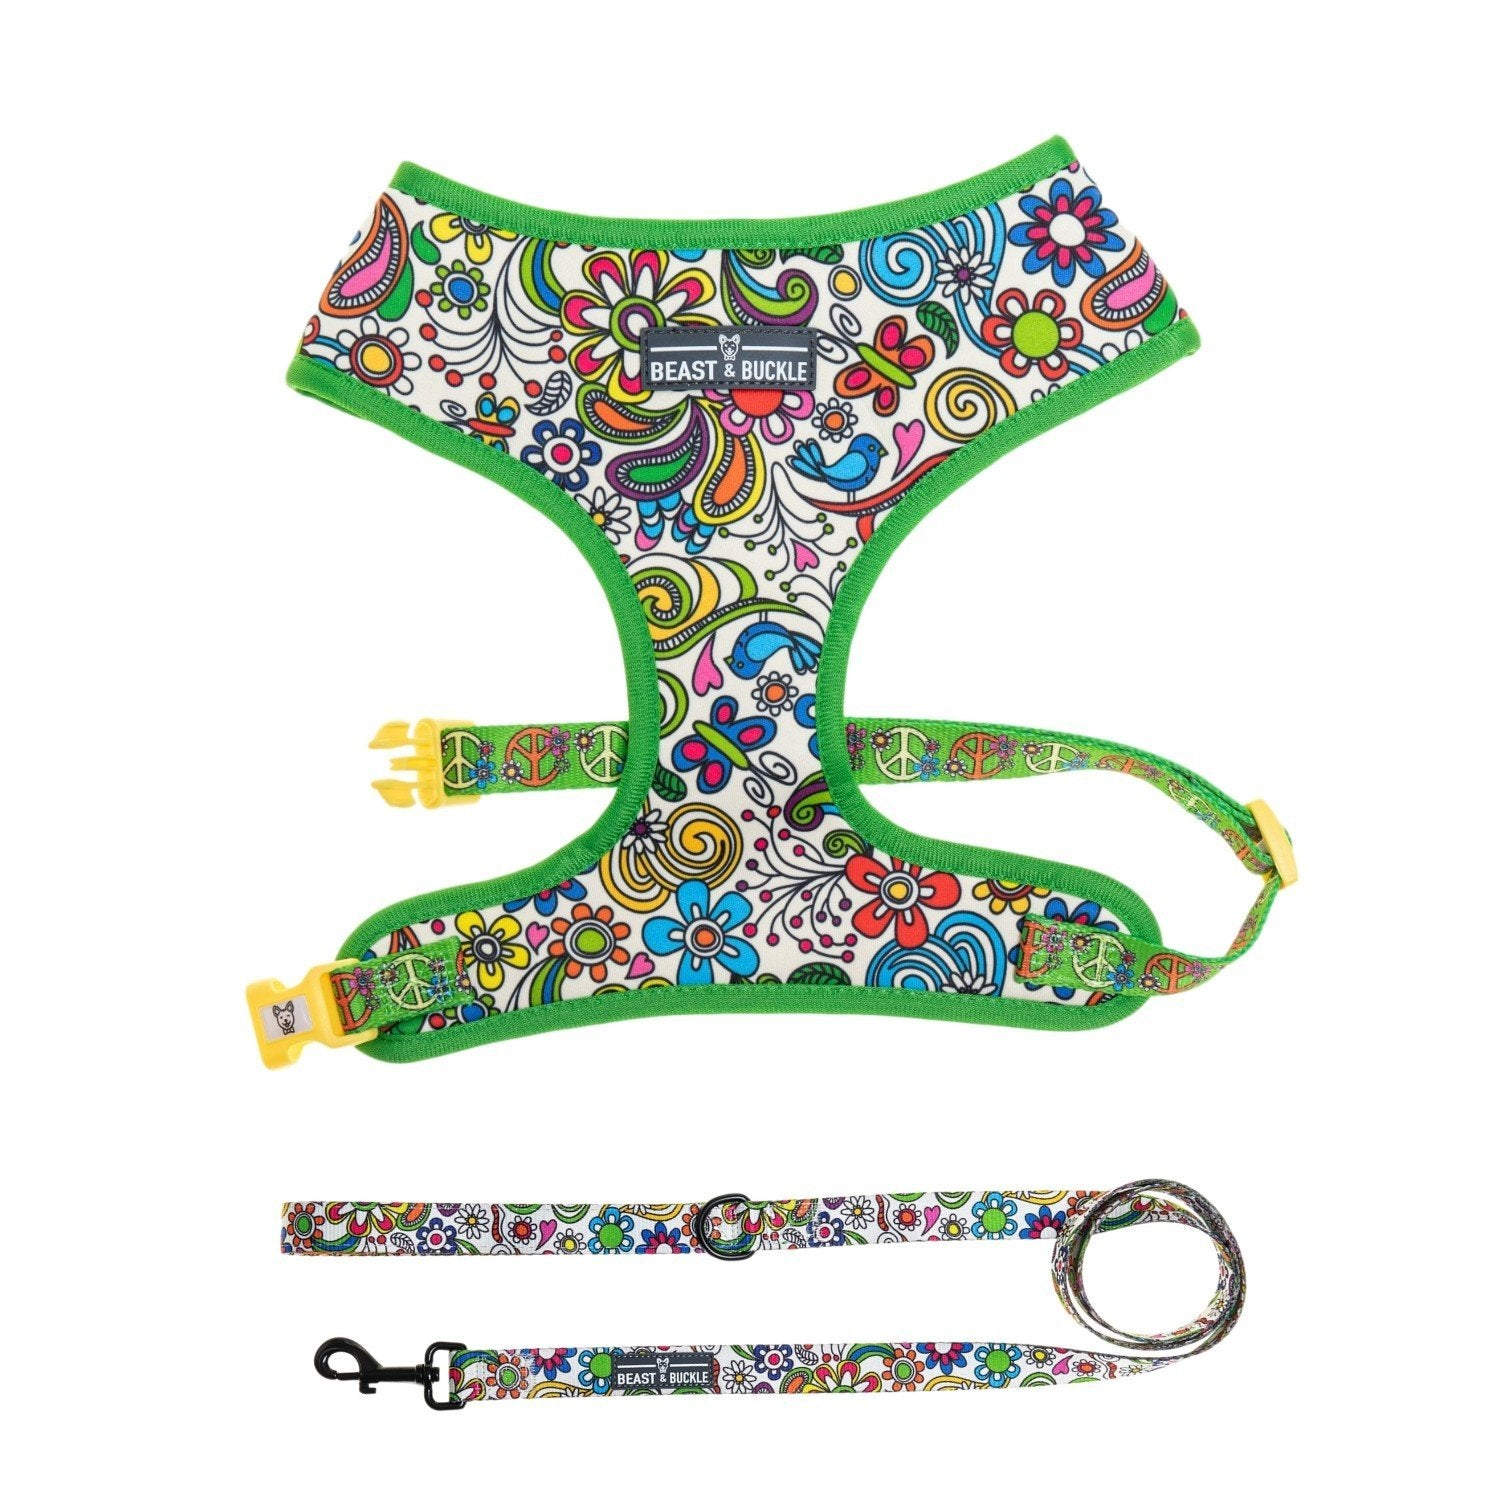 Flower Power Classic Harness & Leash Set - Beast & Buckle